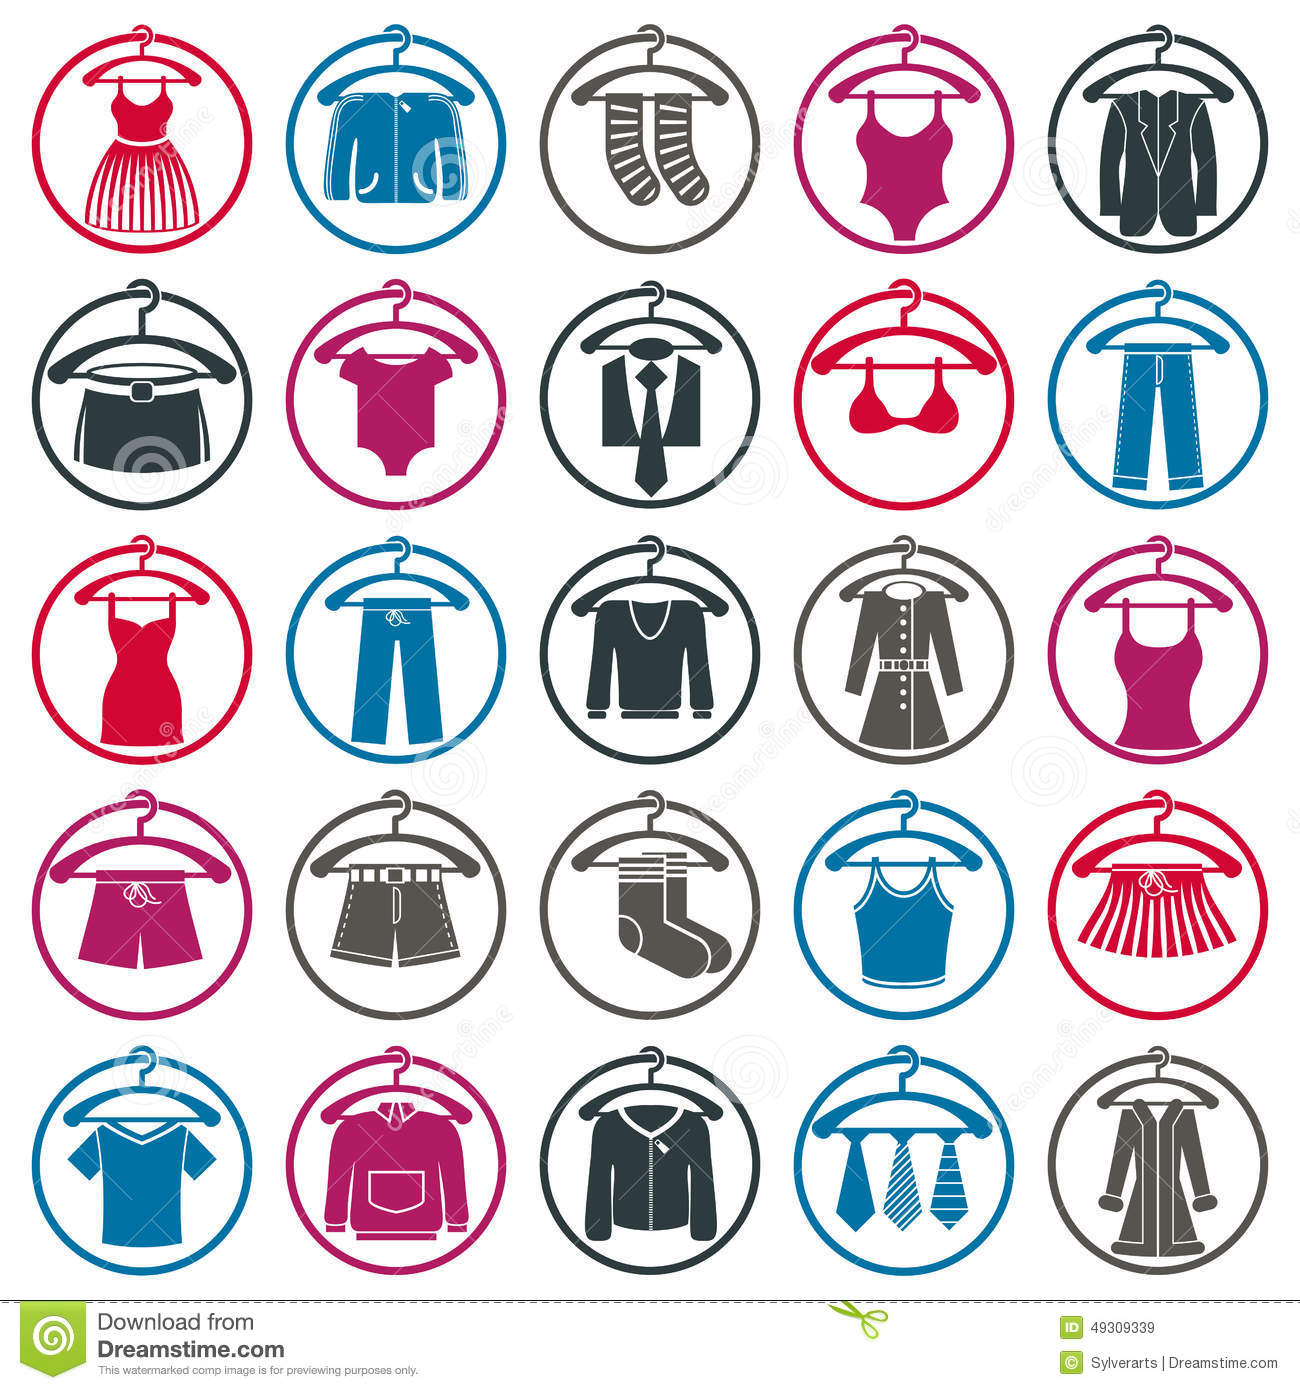 symbolism of clothing Ancient hebrew clothing much symbolism is tied to these various images and god uses is it in his word in both negative and positive ways to show how we relate.